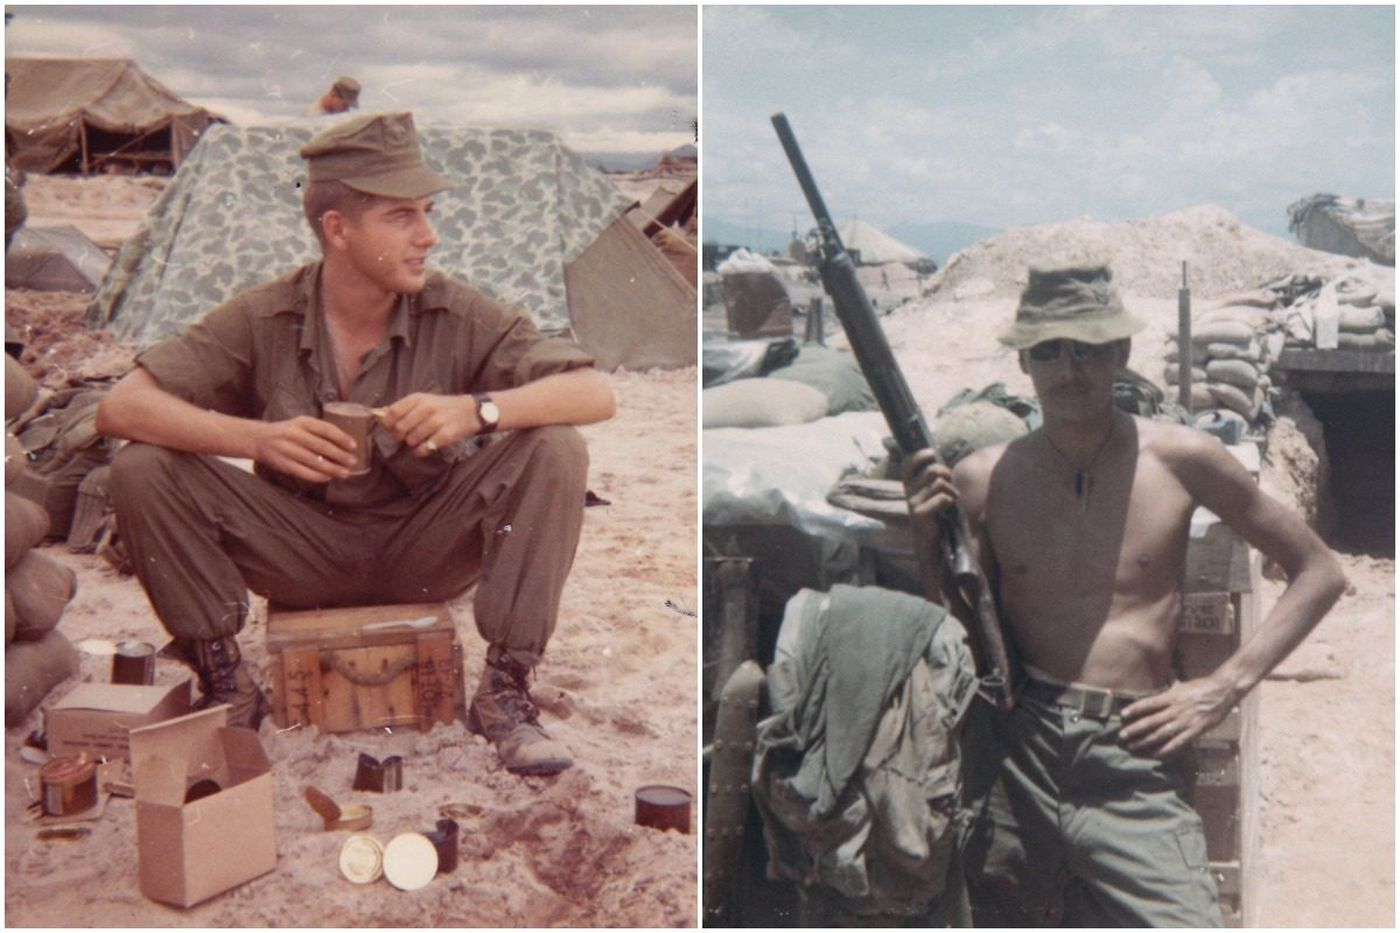 Two Philly-area veterans help bring PBS's 'Vietnam War' home